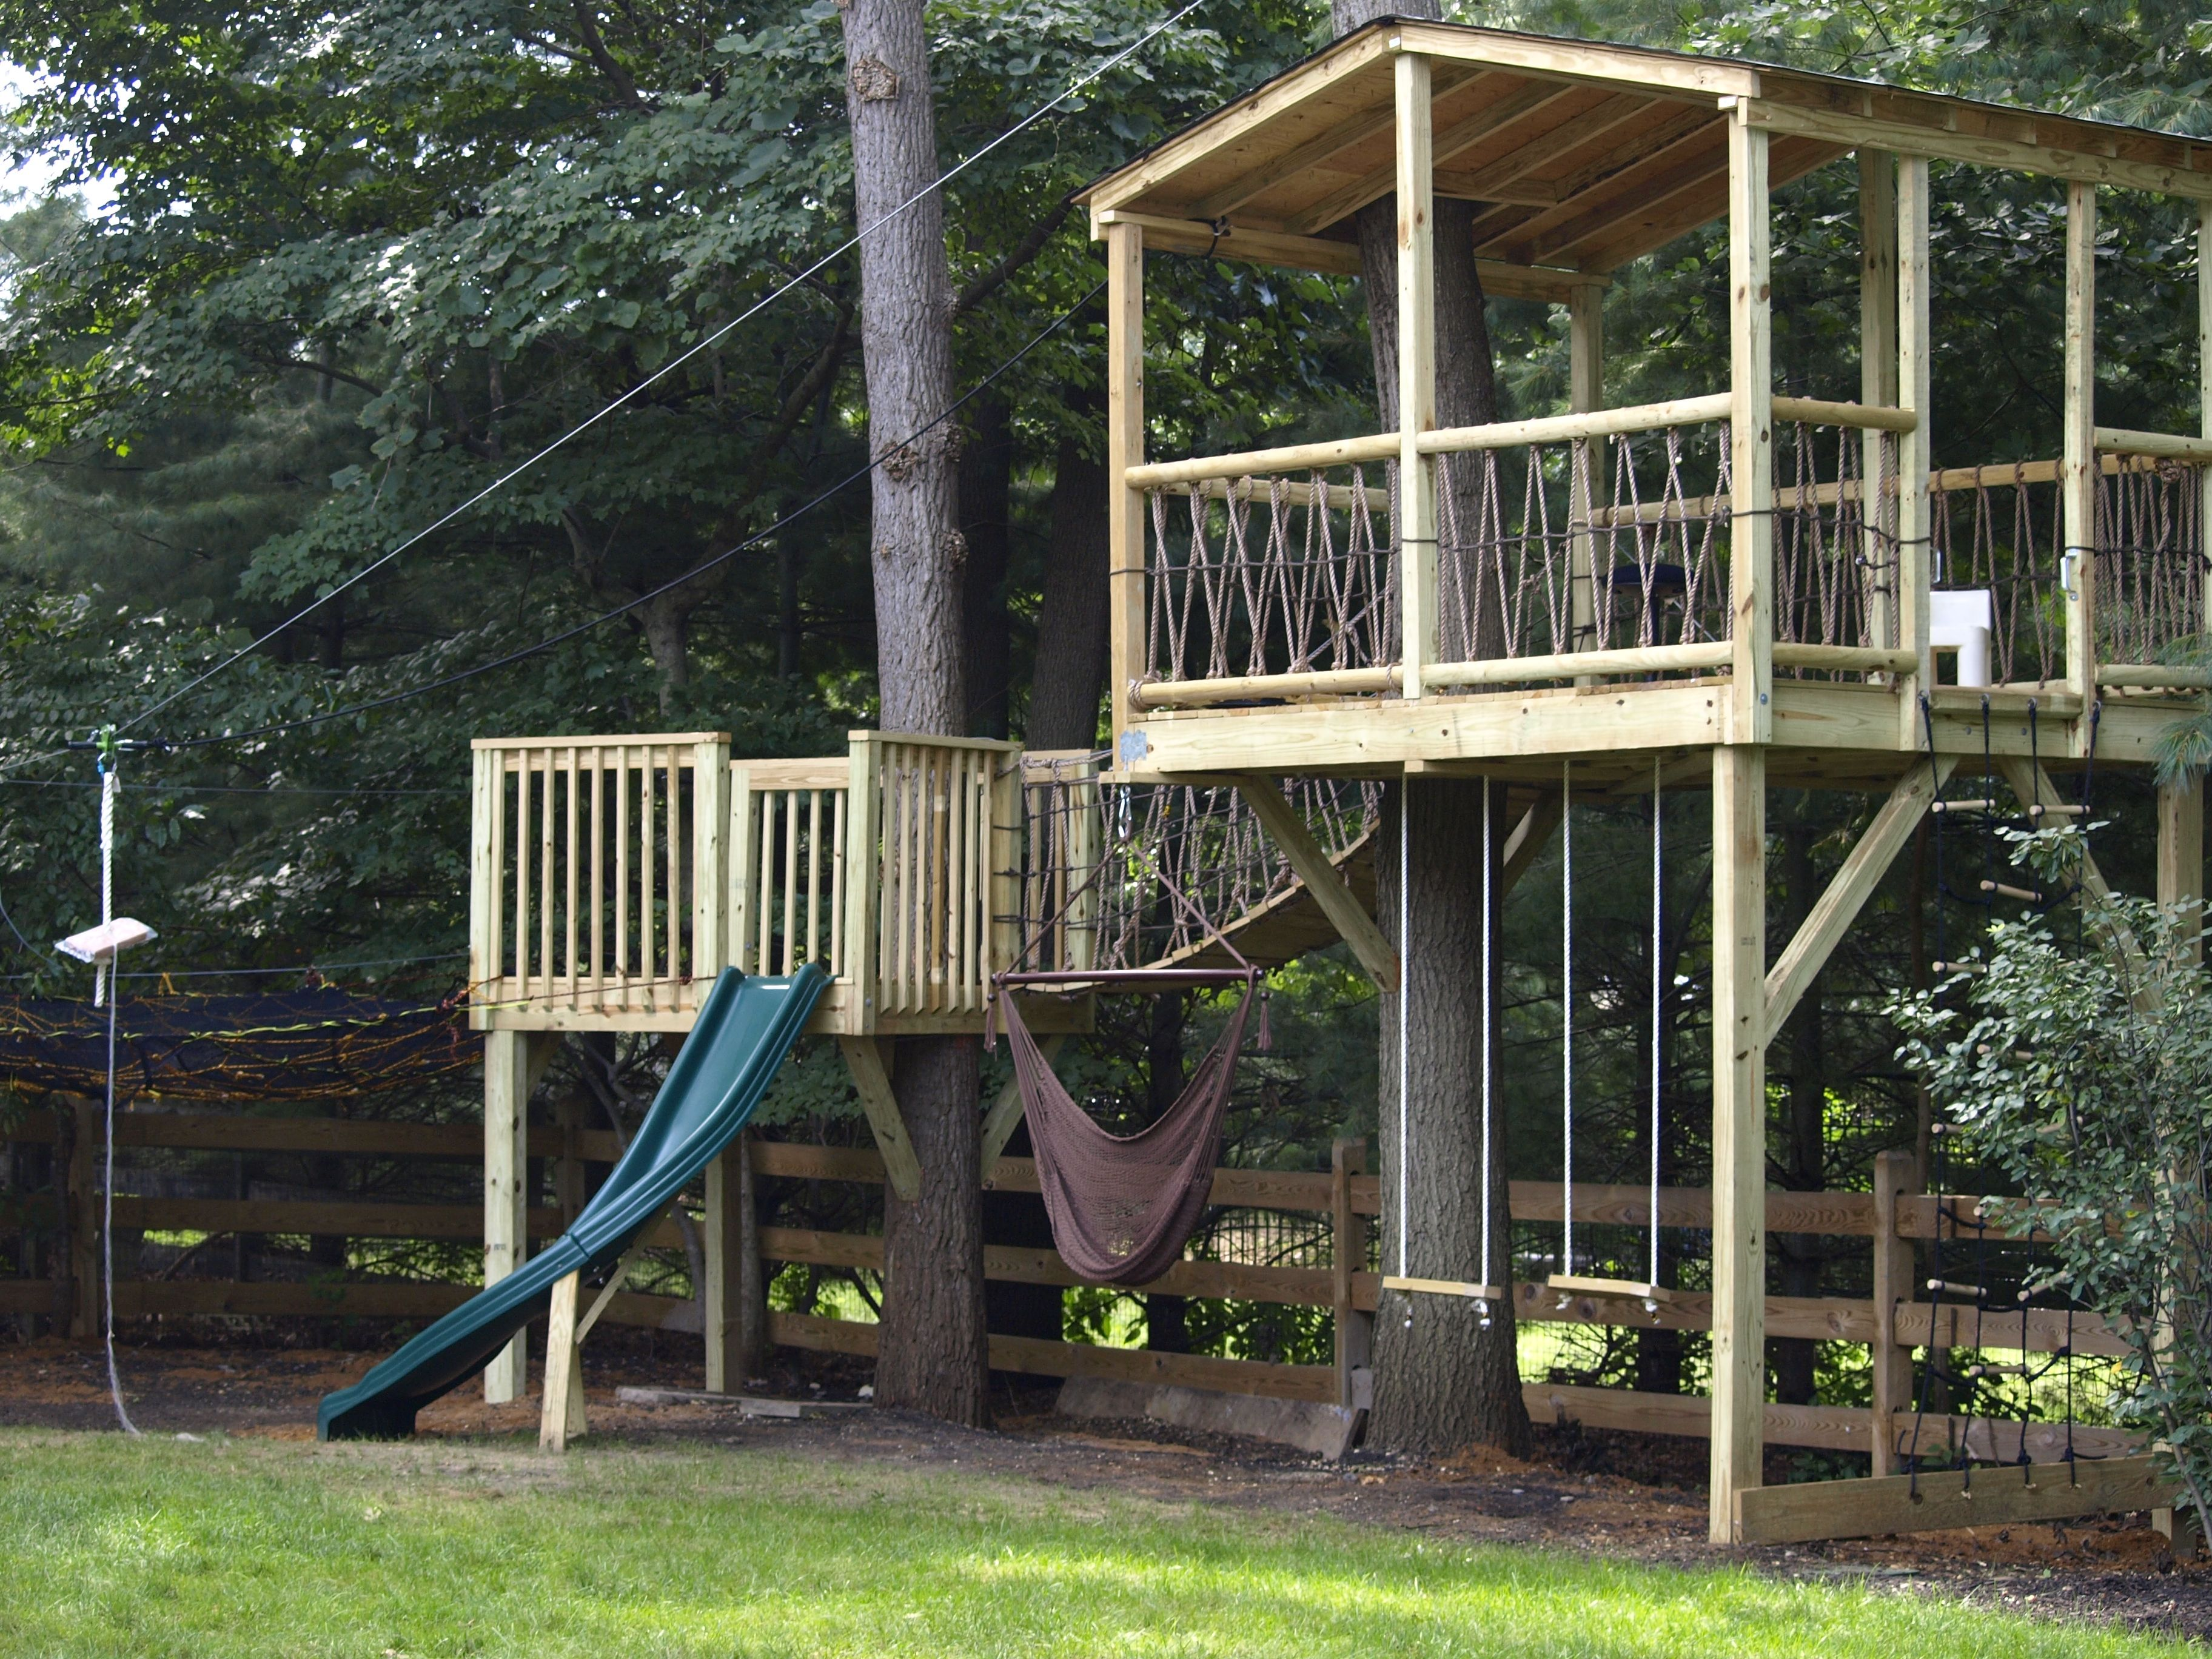 Tree house inspiring ideas pinterest tree houses trees and houses